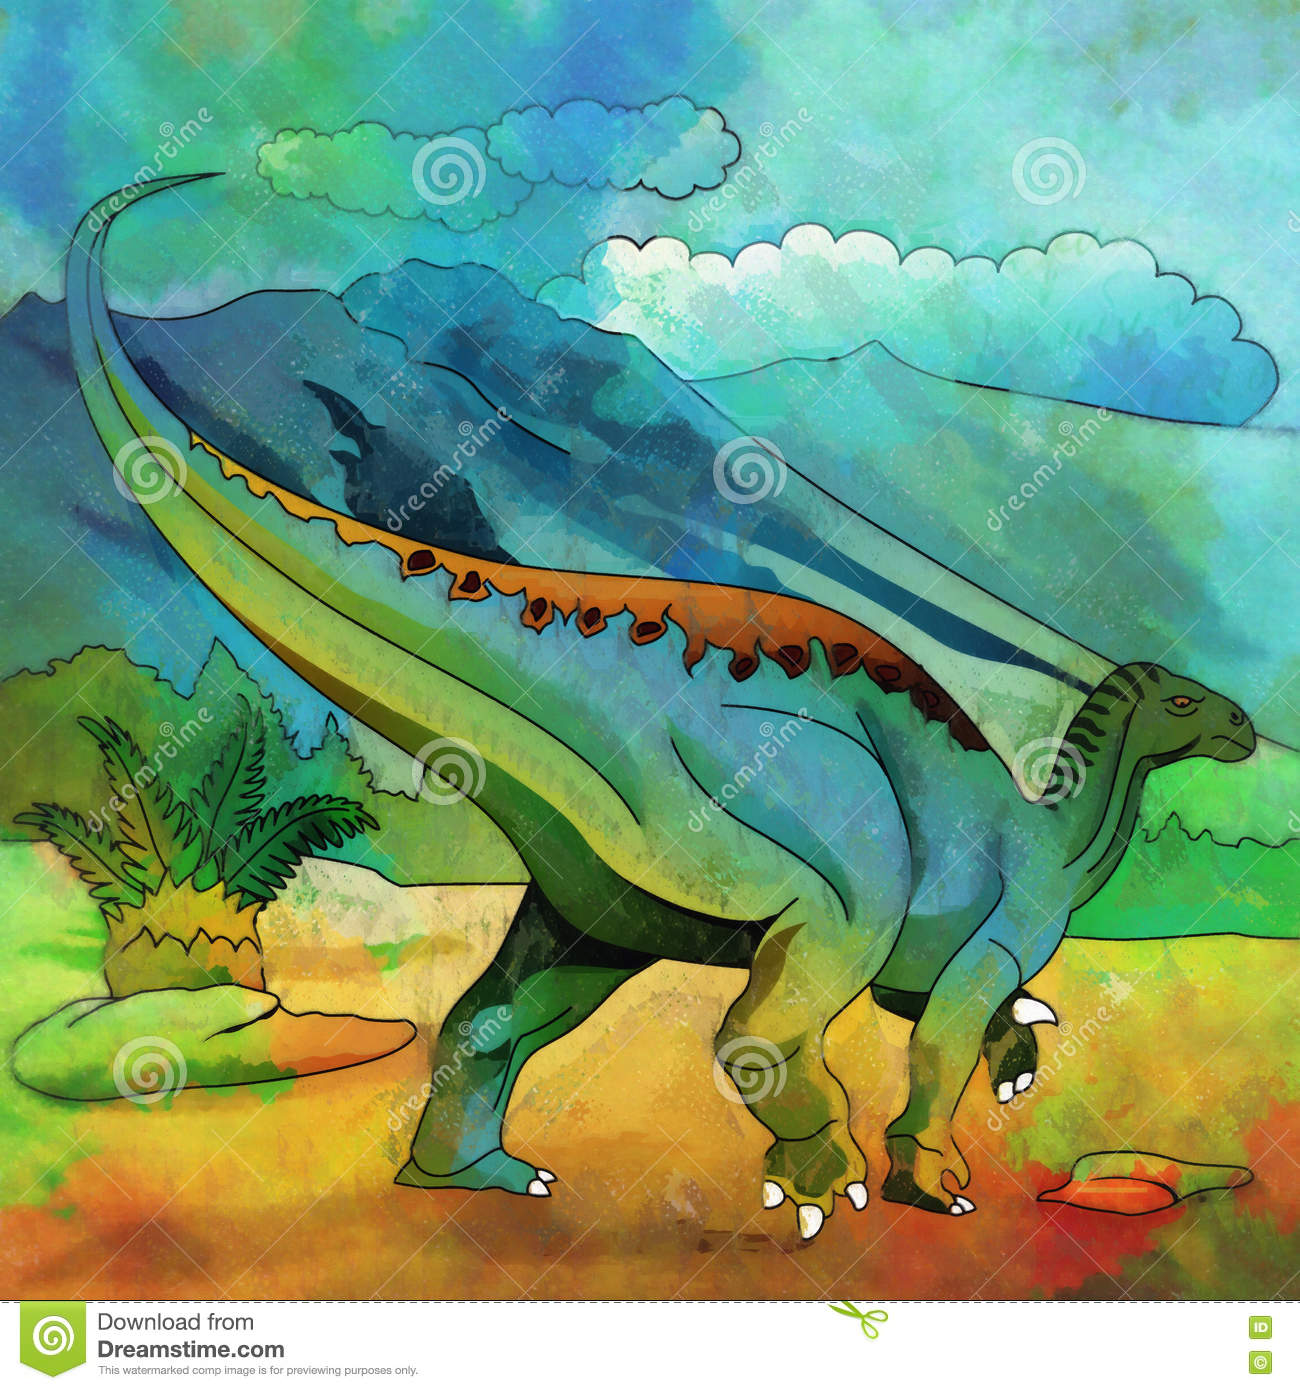 Dinosaur In The Habitat Illustration Of Plateosaur Stock